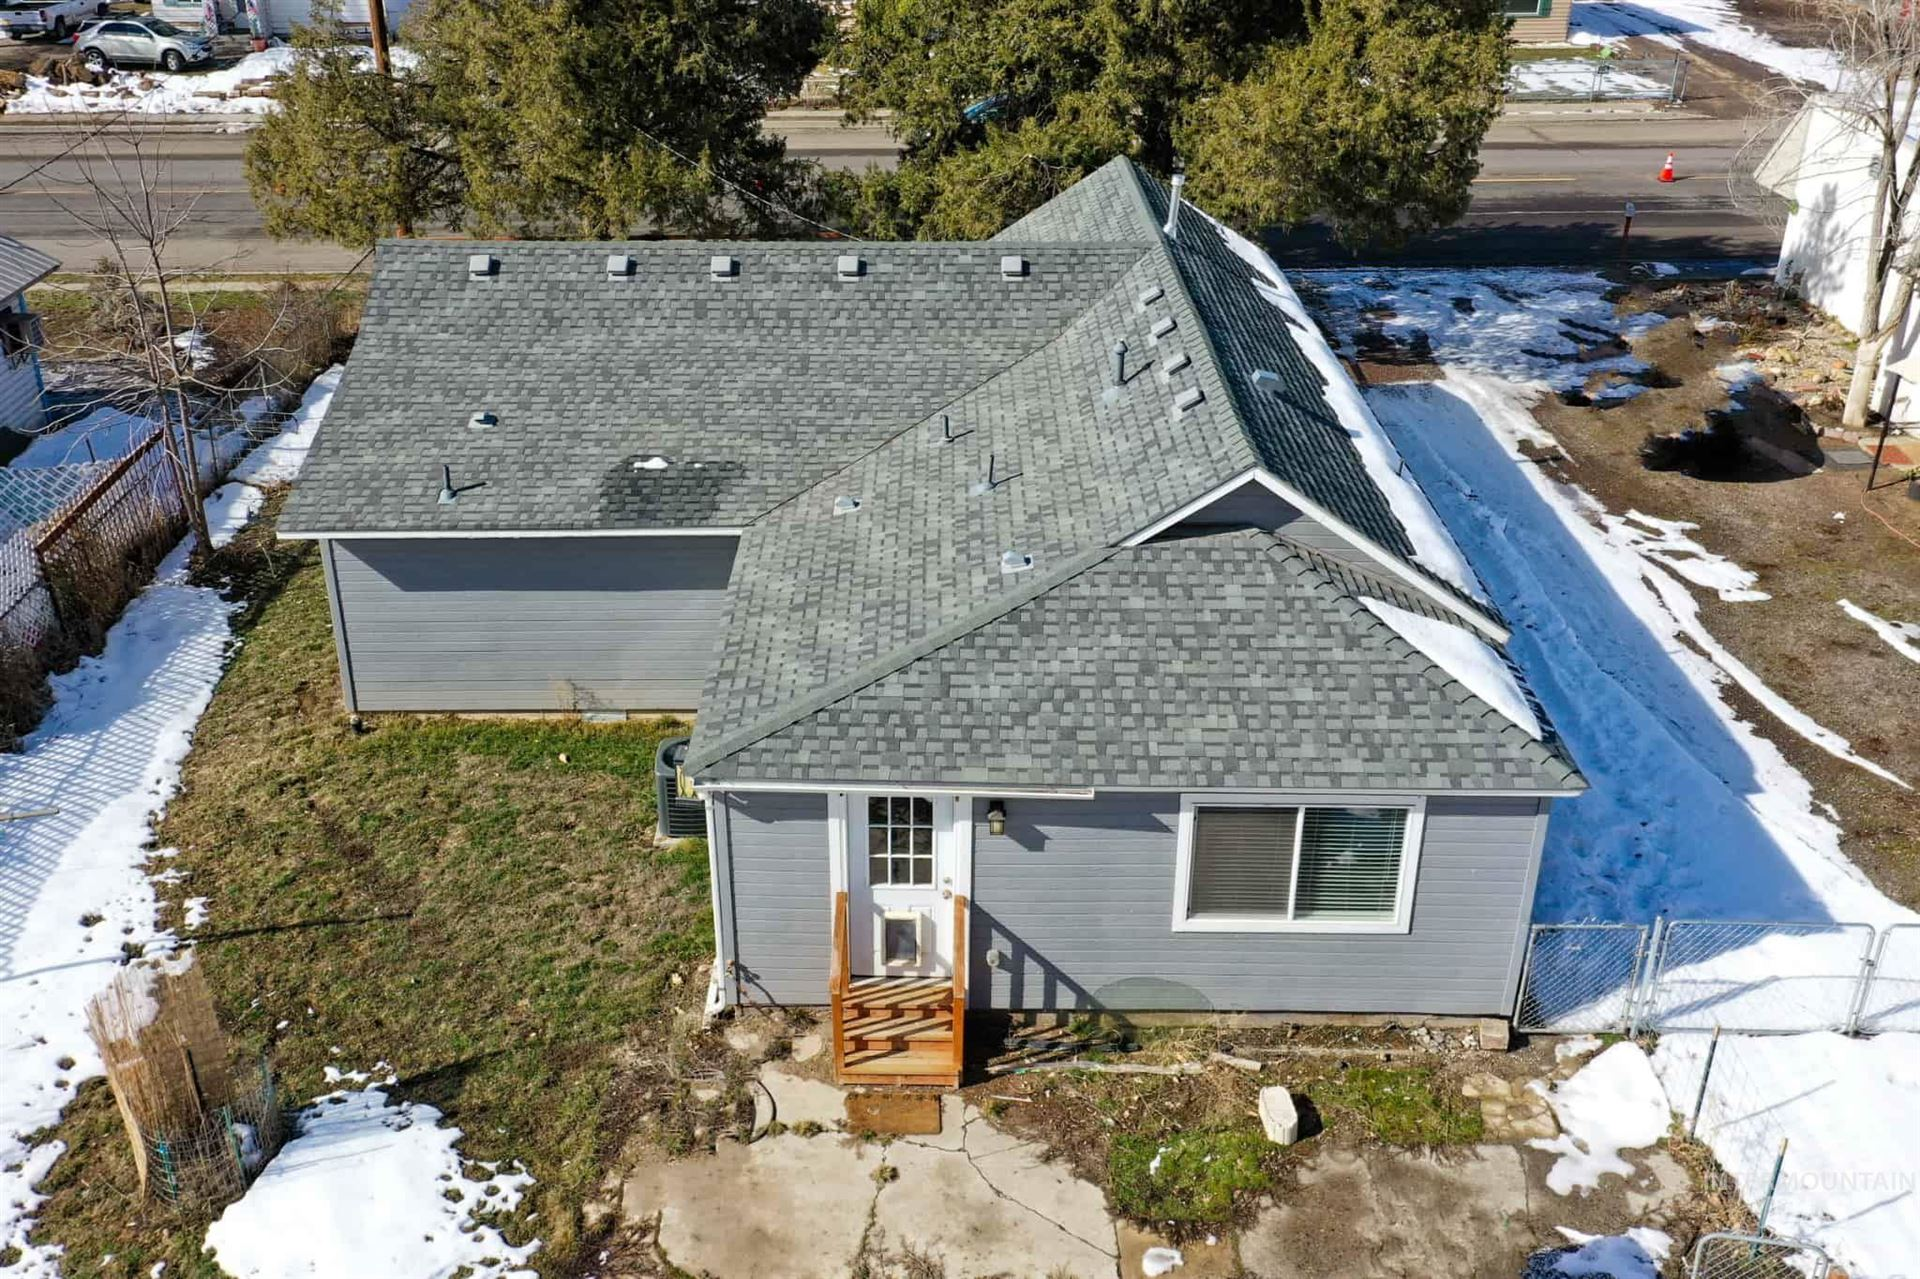 Photo of 1312 N 6TH, Payette, ID 83661 (MLS # 98794891)